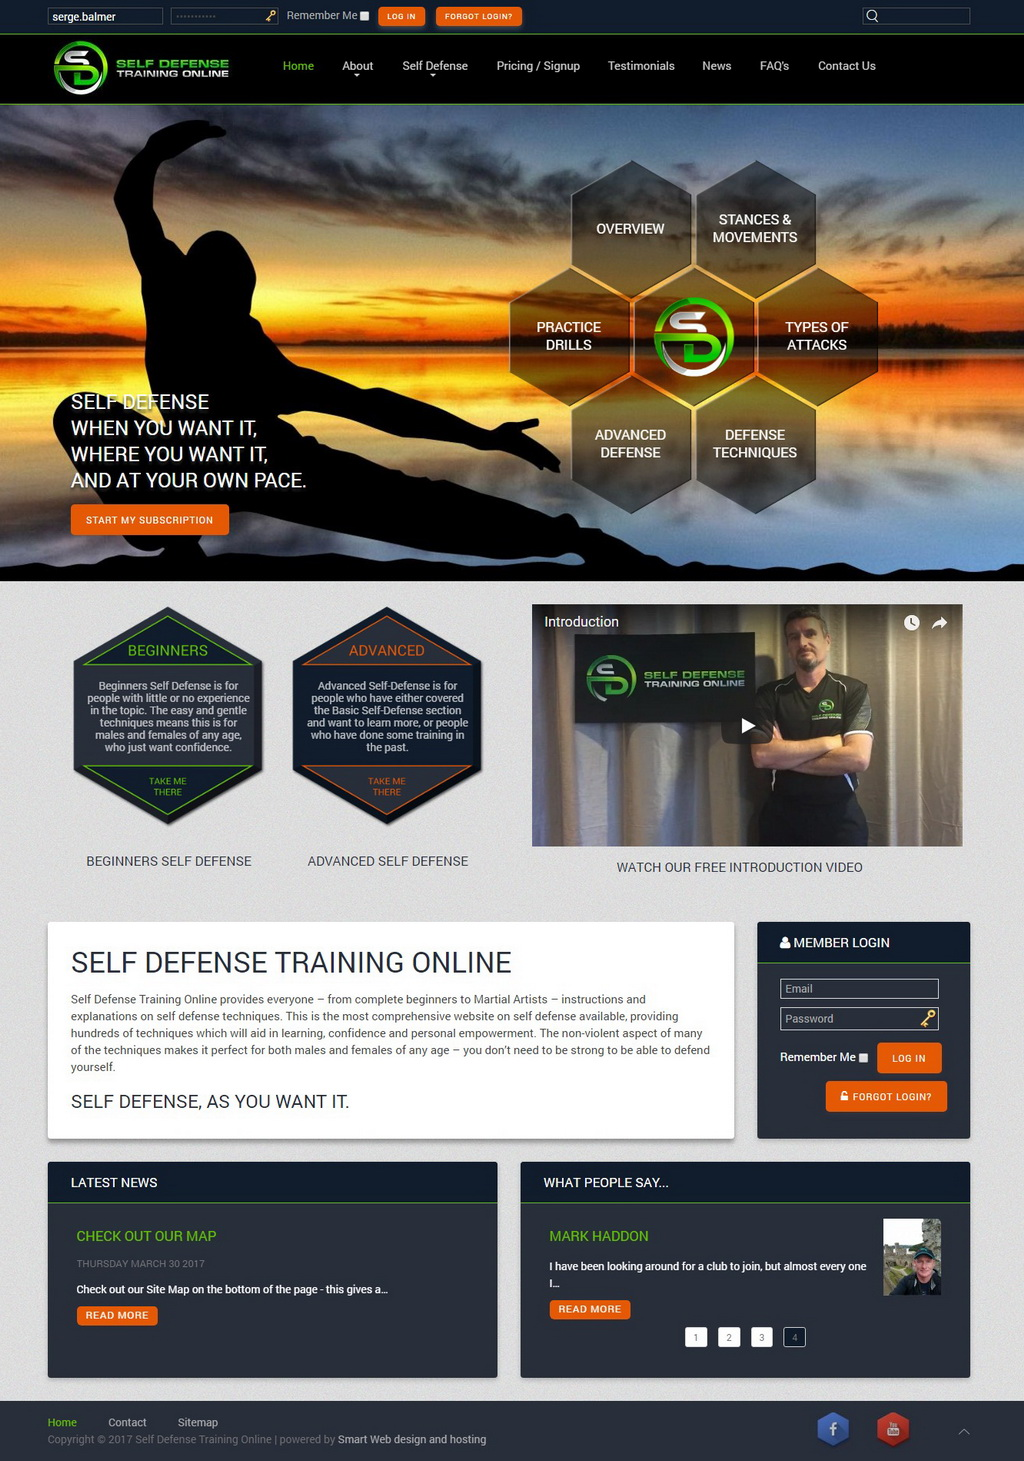 Self Defense Training Online